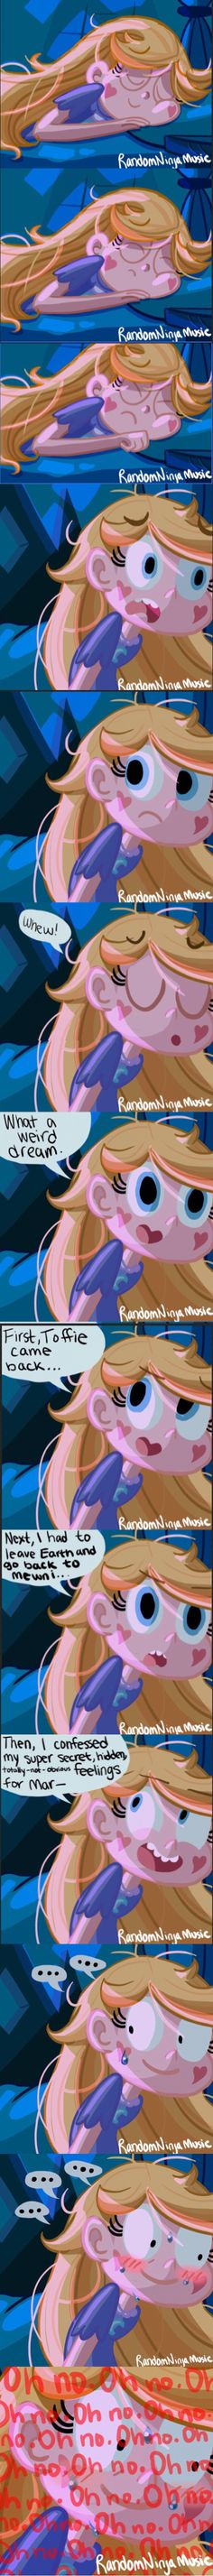 Yeah it wasn't a dream....   Star vs the Forces of Evil 